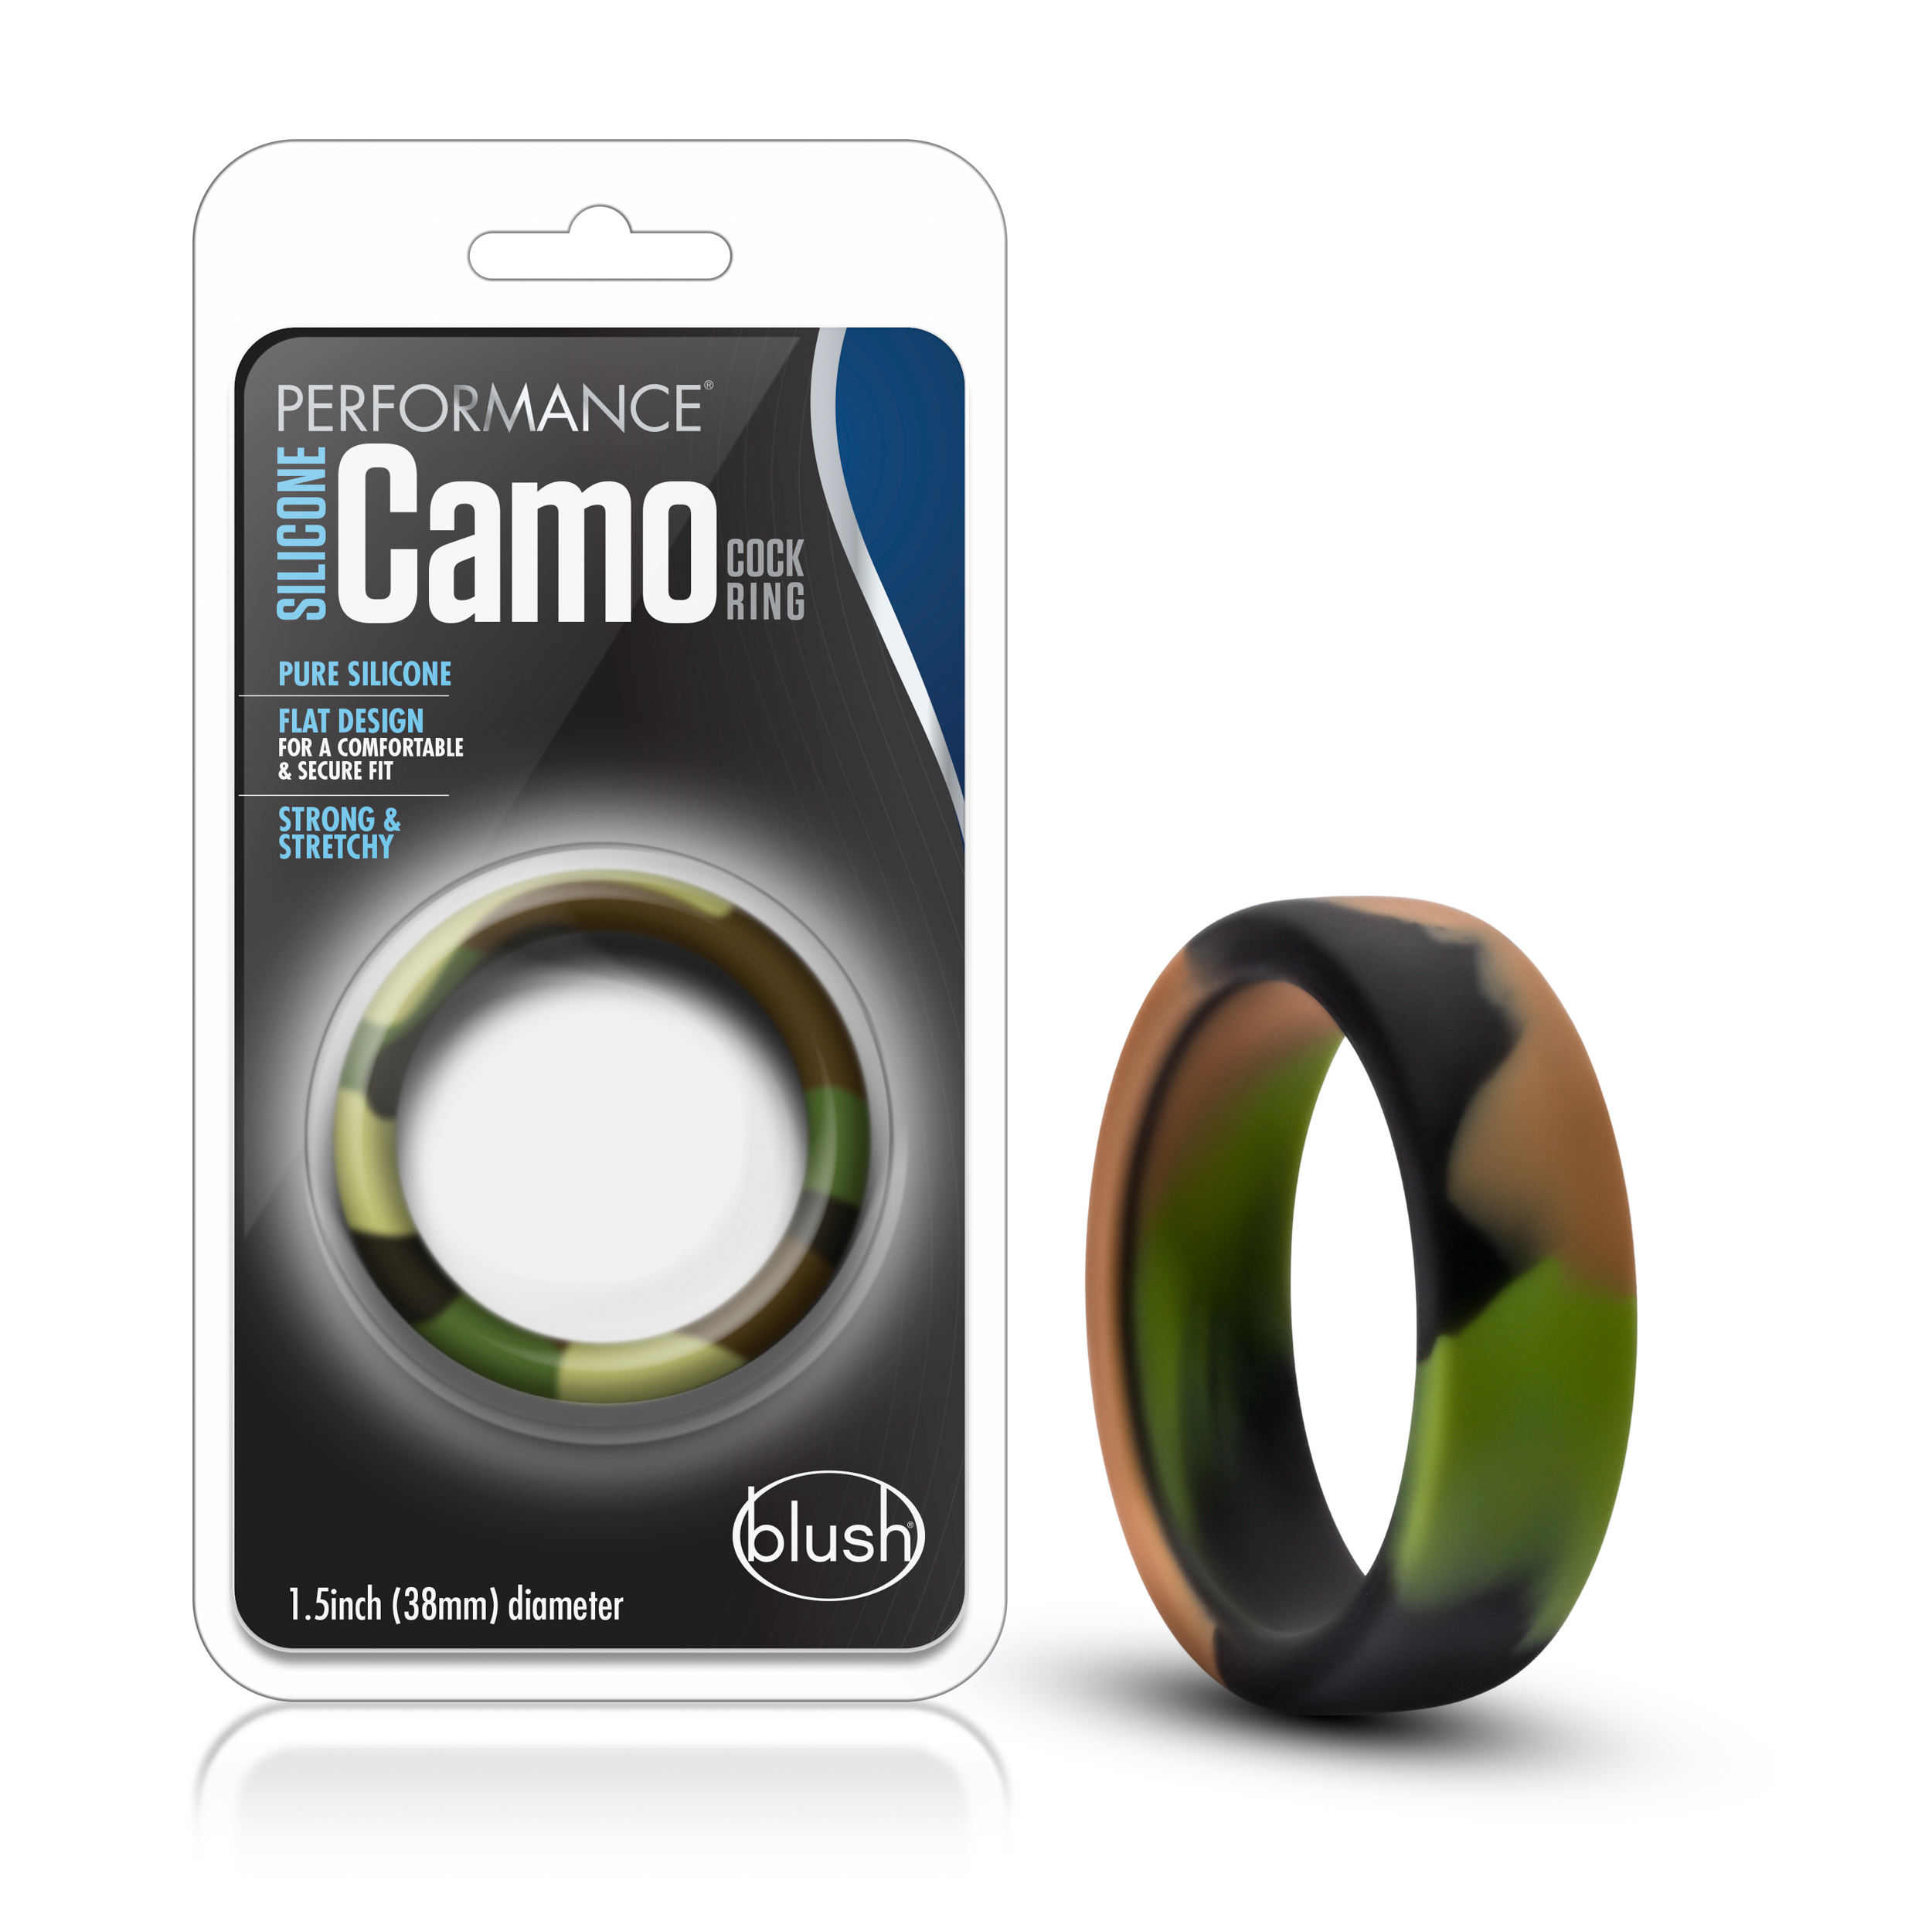 Performance - Silicone Camo Cock Ring - Green Camoflauge